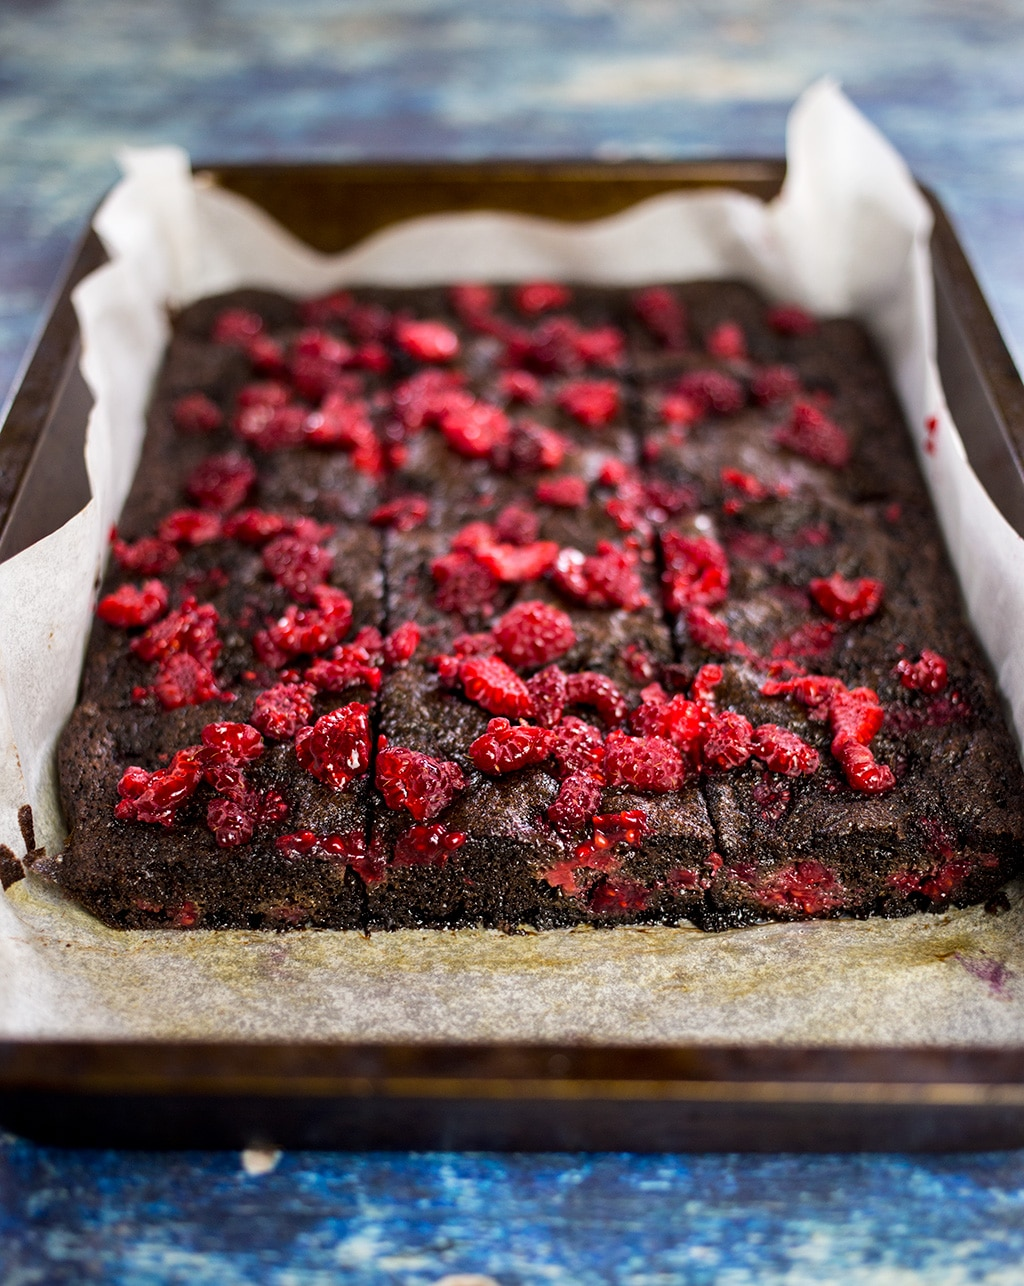 Paleo Chocolate Raspberry Brownies in Baking Tray